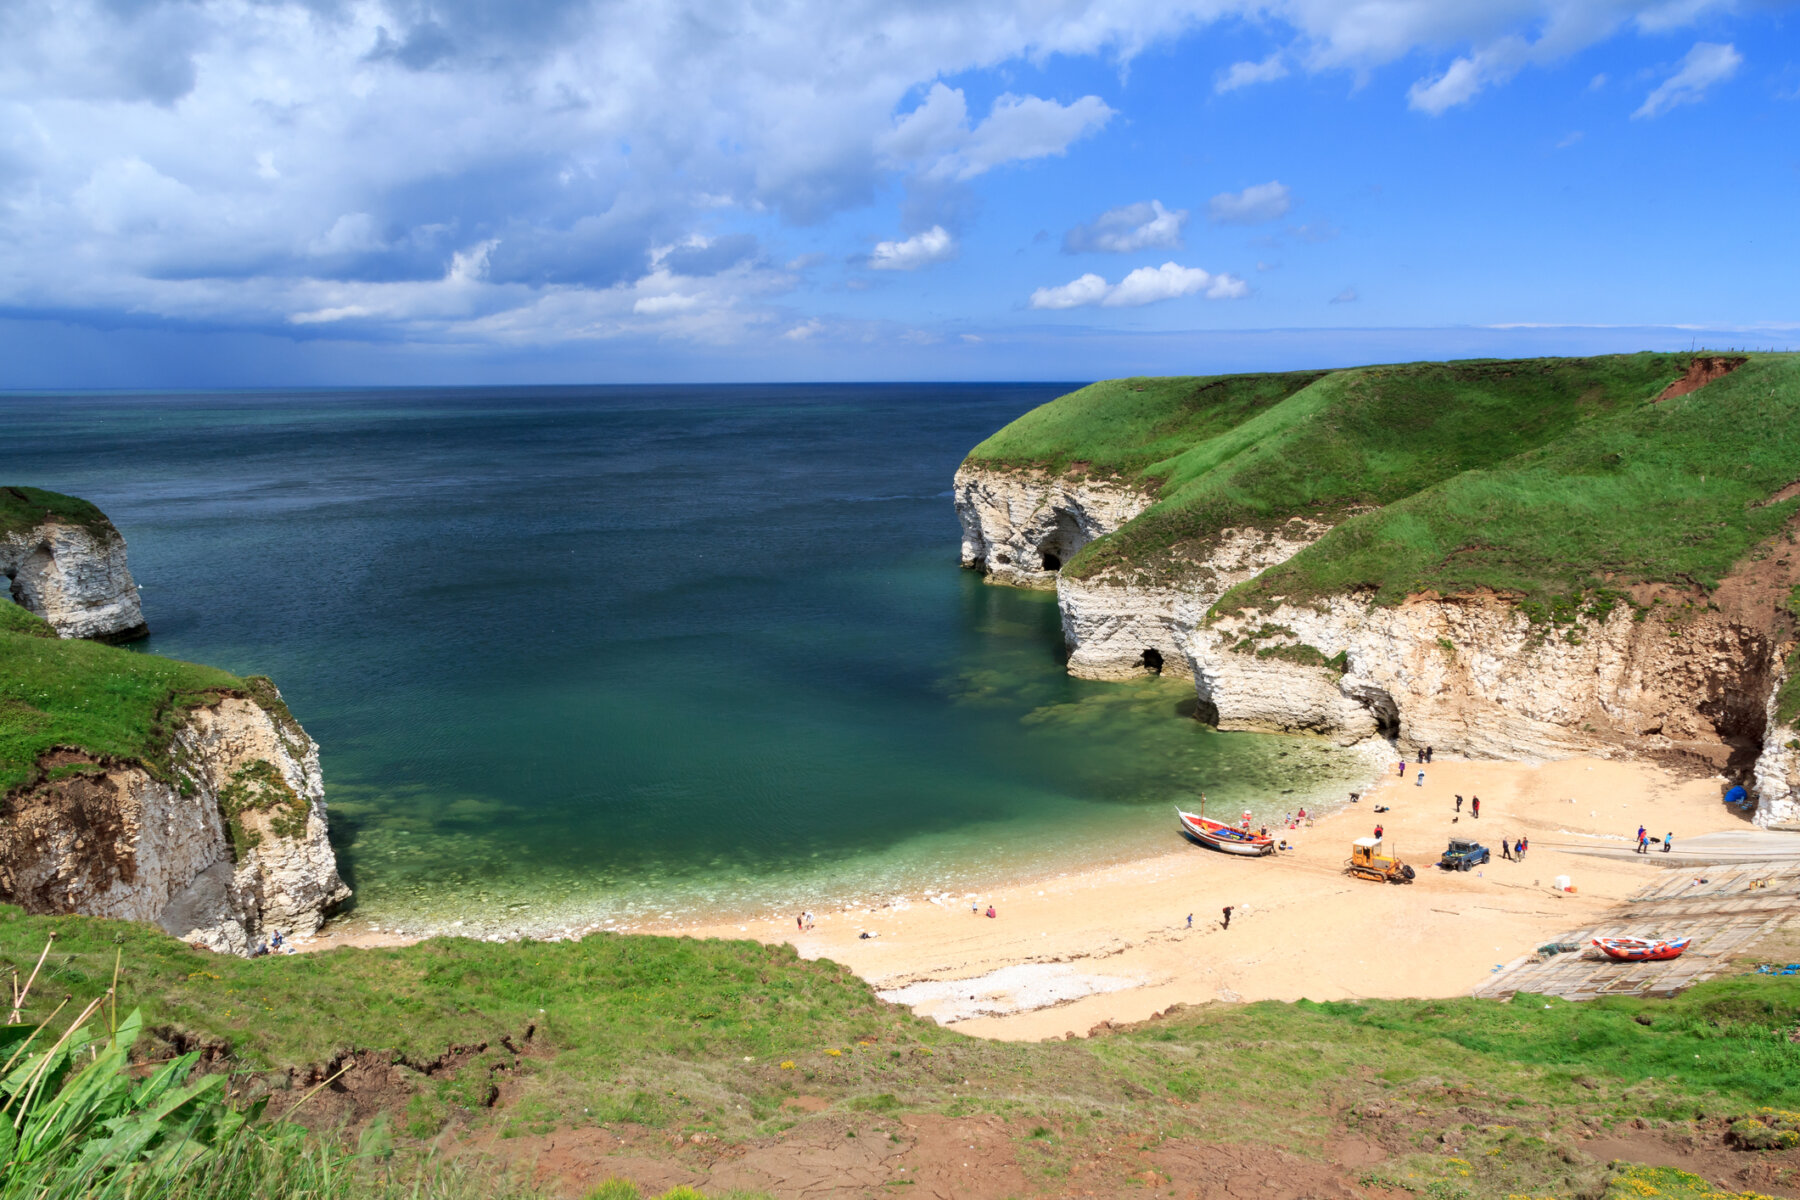 Hard to believe this is in the UK - North Landing Flamborough is one of the best beaches in East Yorkshire